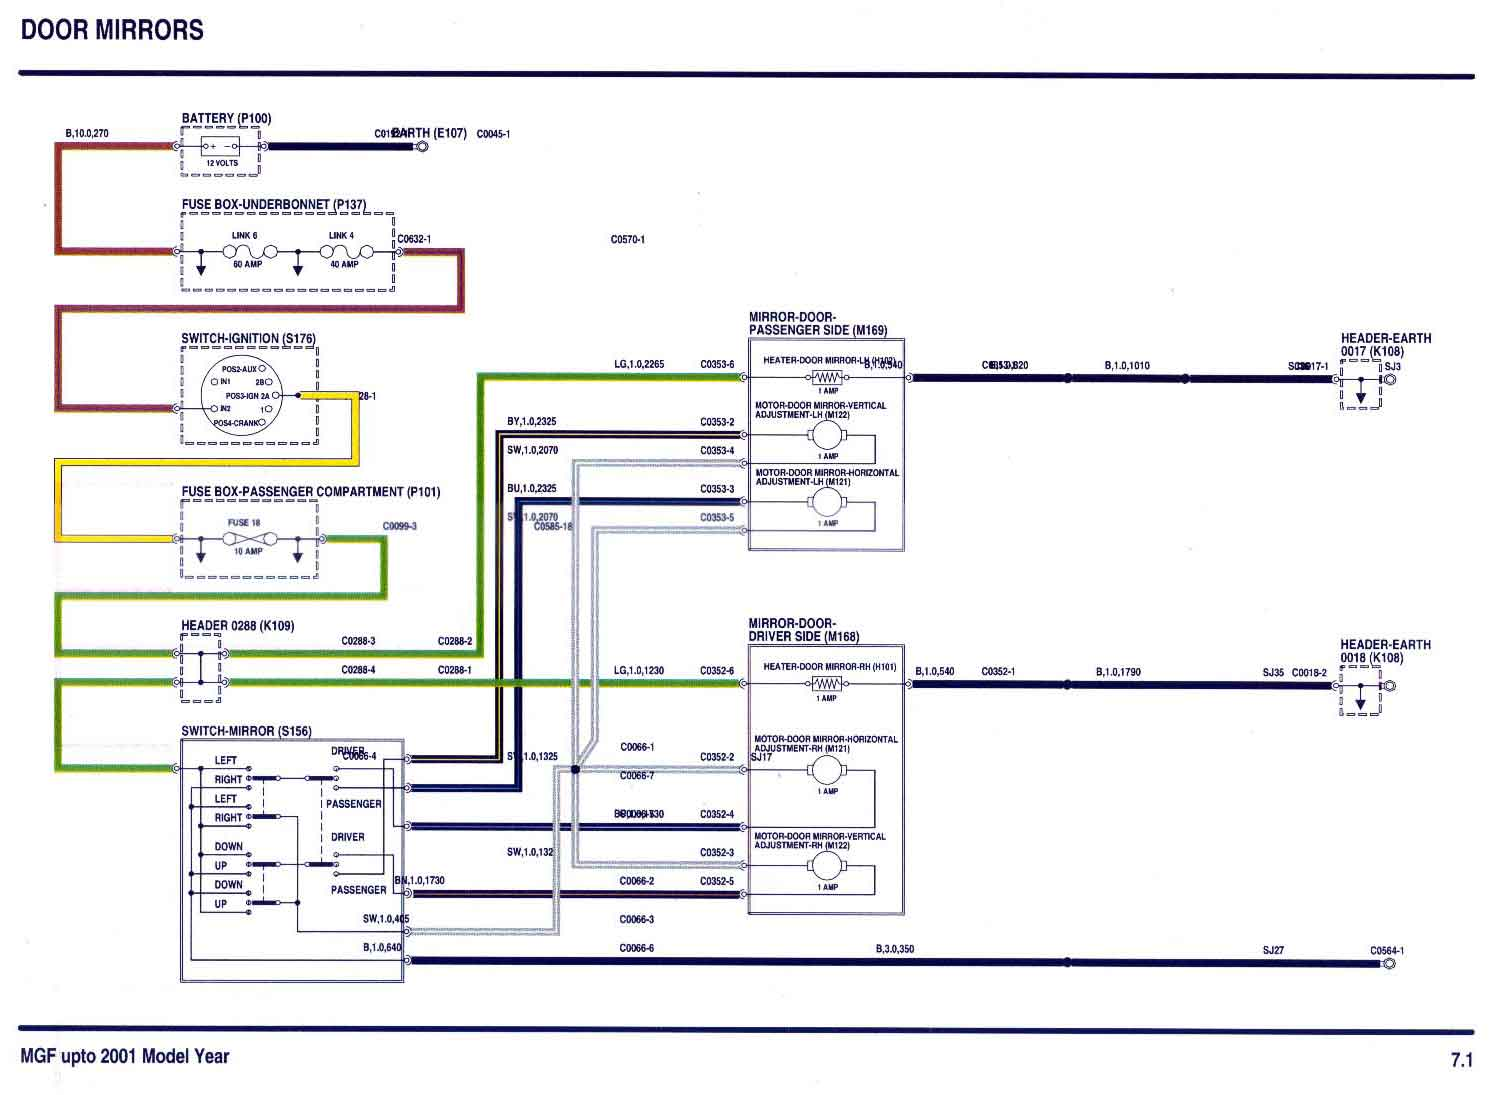 Mirrors electrical circuits rover 45 wiring diagram at crackthecode.co